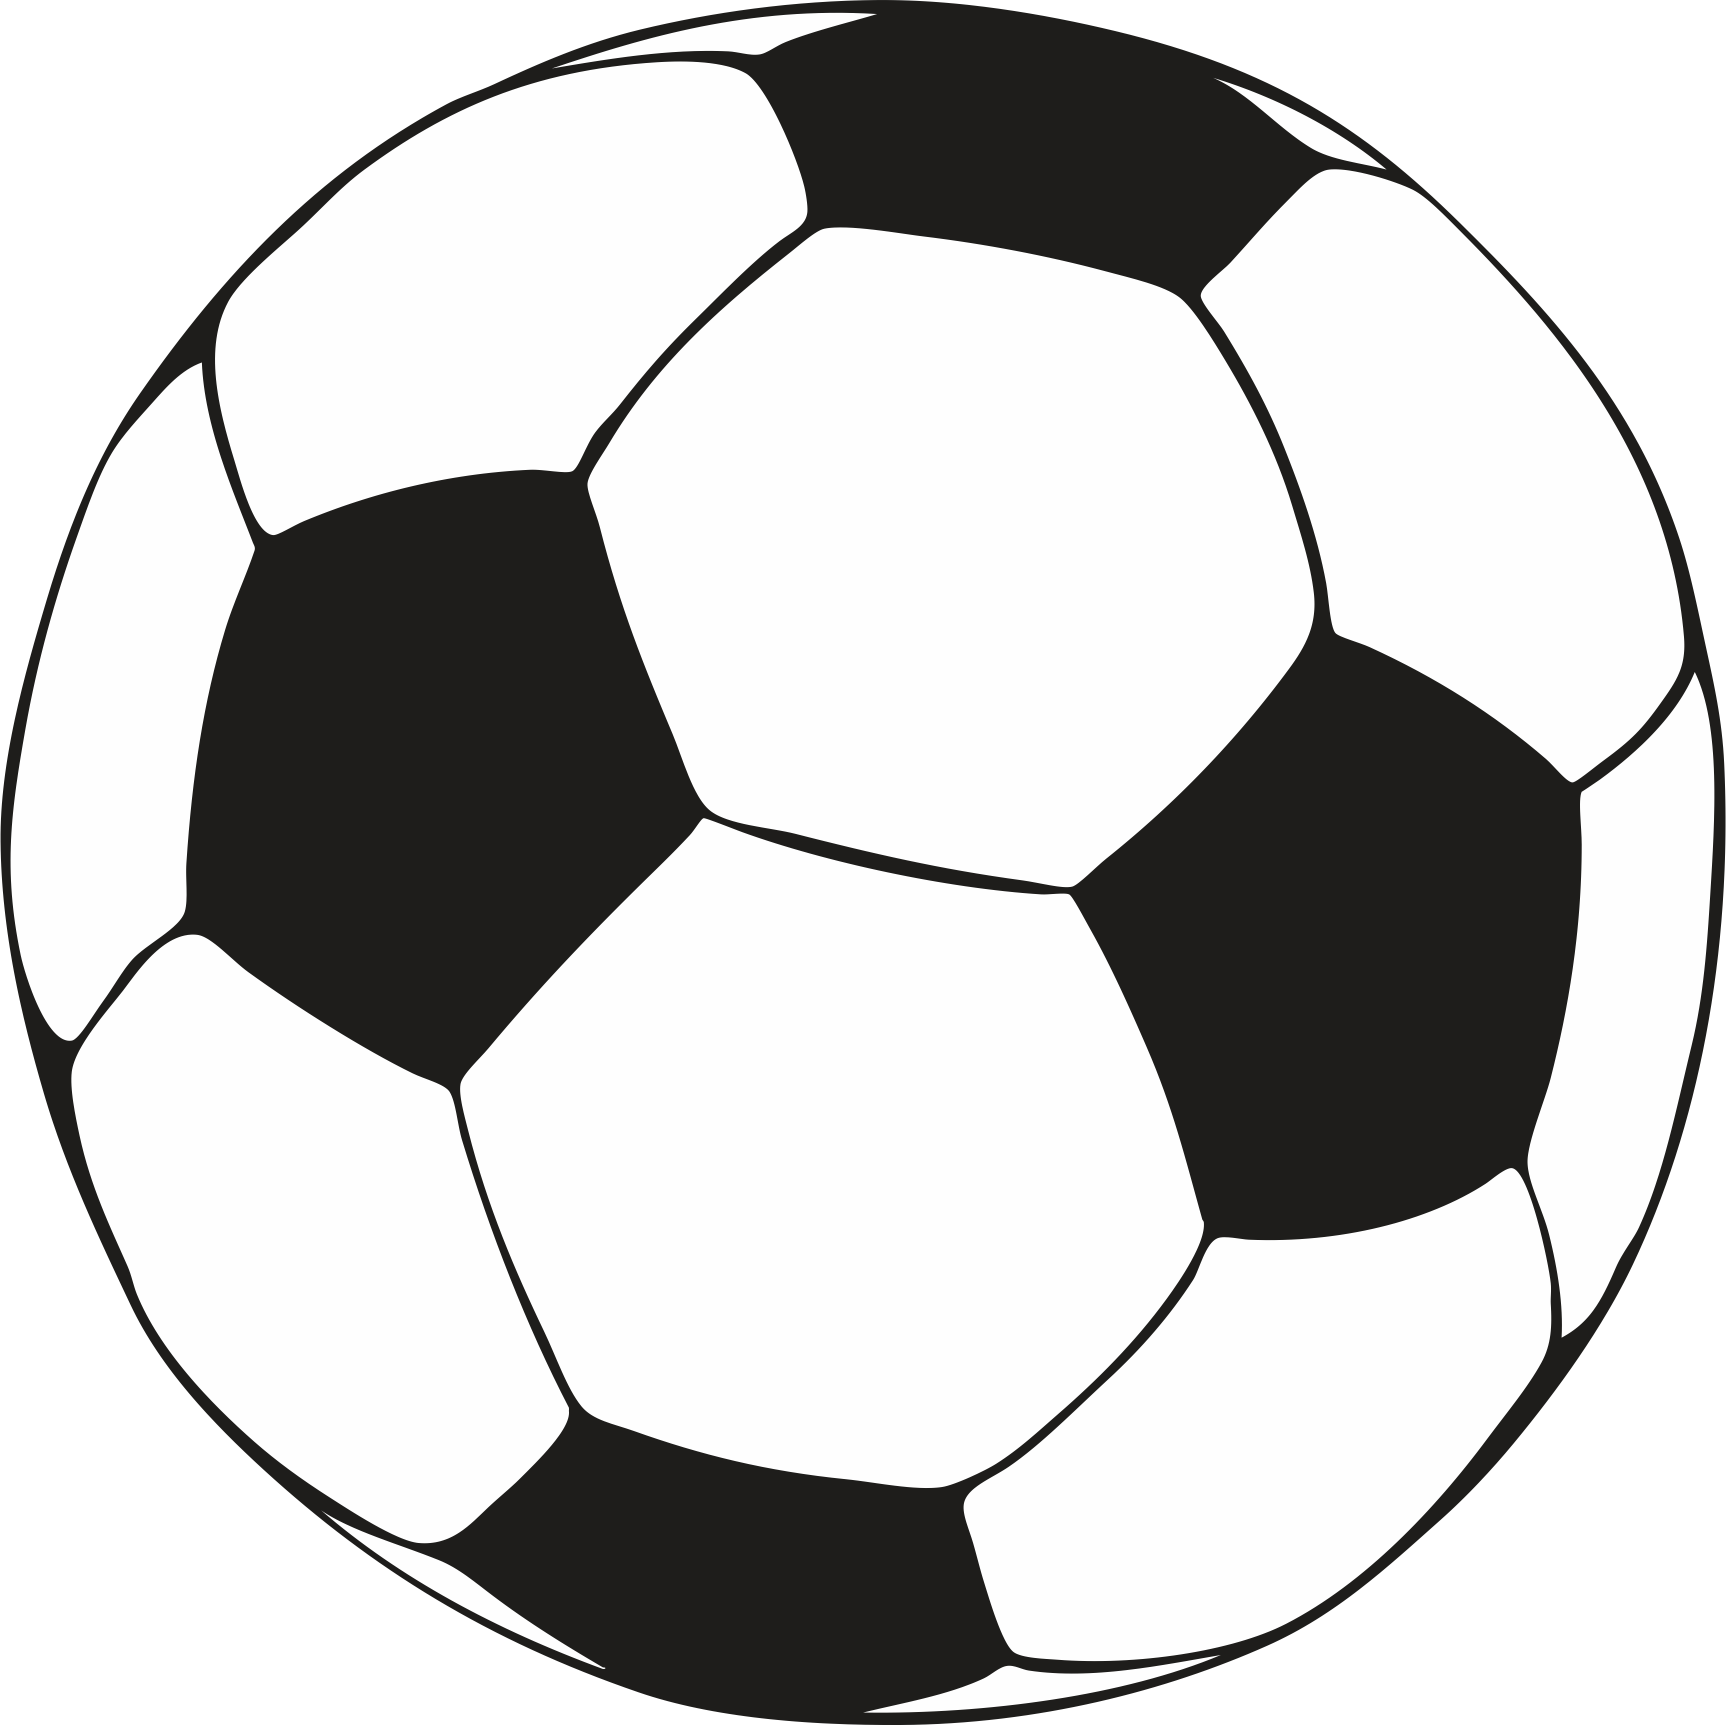 Soccer Ball Coloring Pages Download And Print For Free Special Miscellany Pinterest Soccer Soccer Ball Soccer Coloring Pages